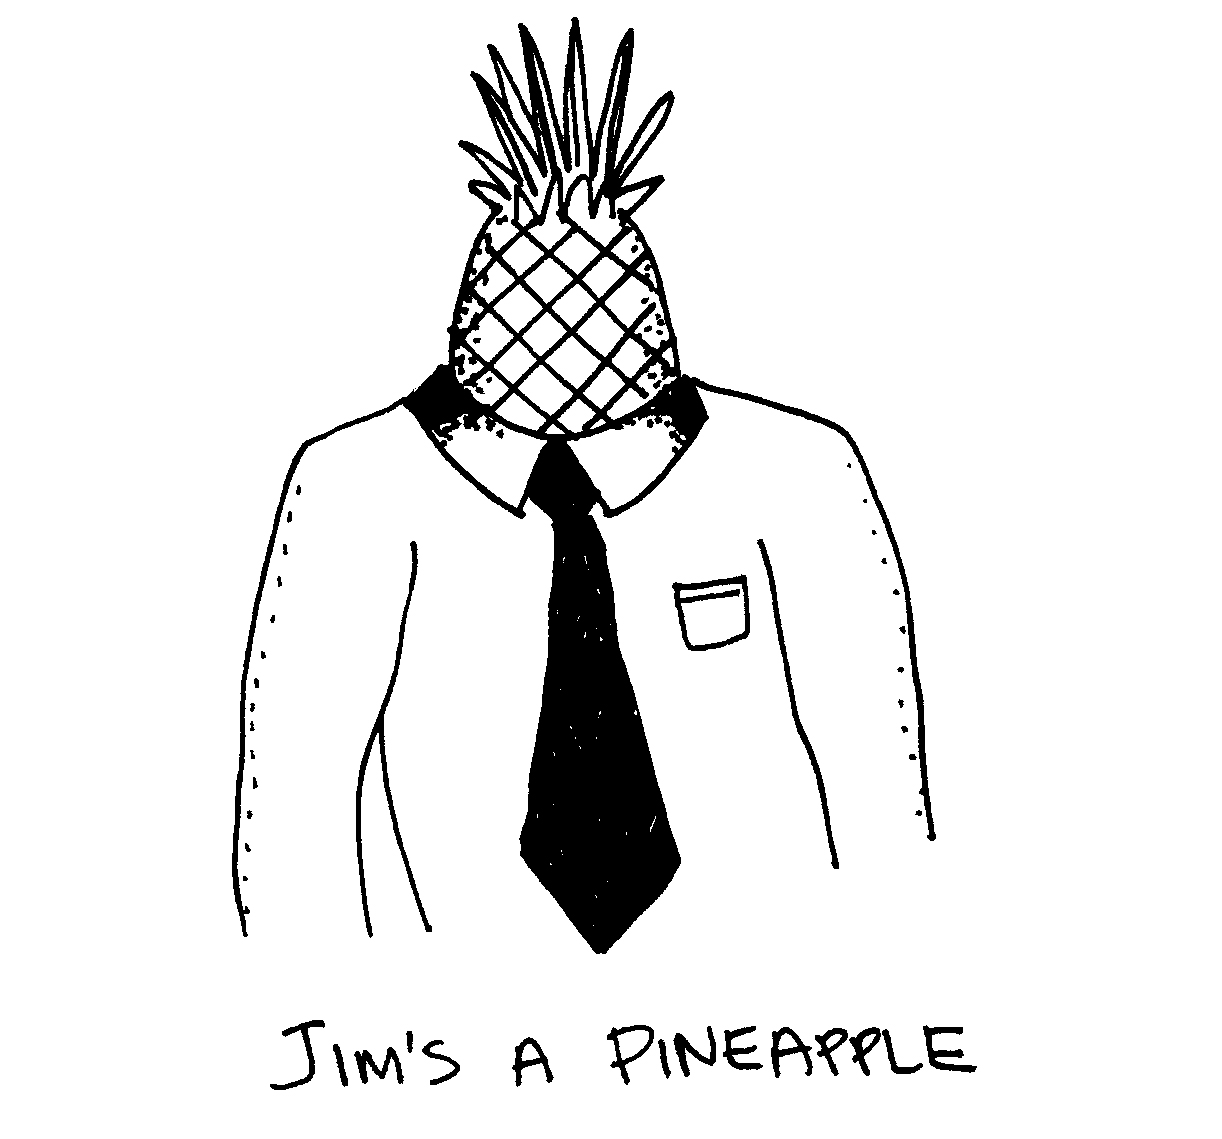 Jim's A Pineapple.jpg